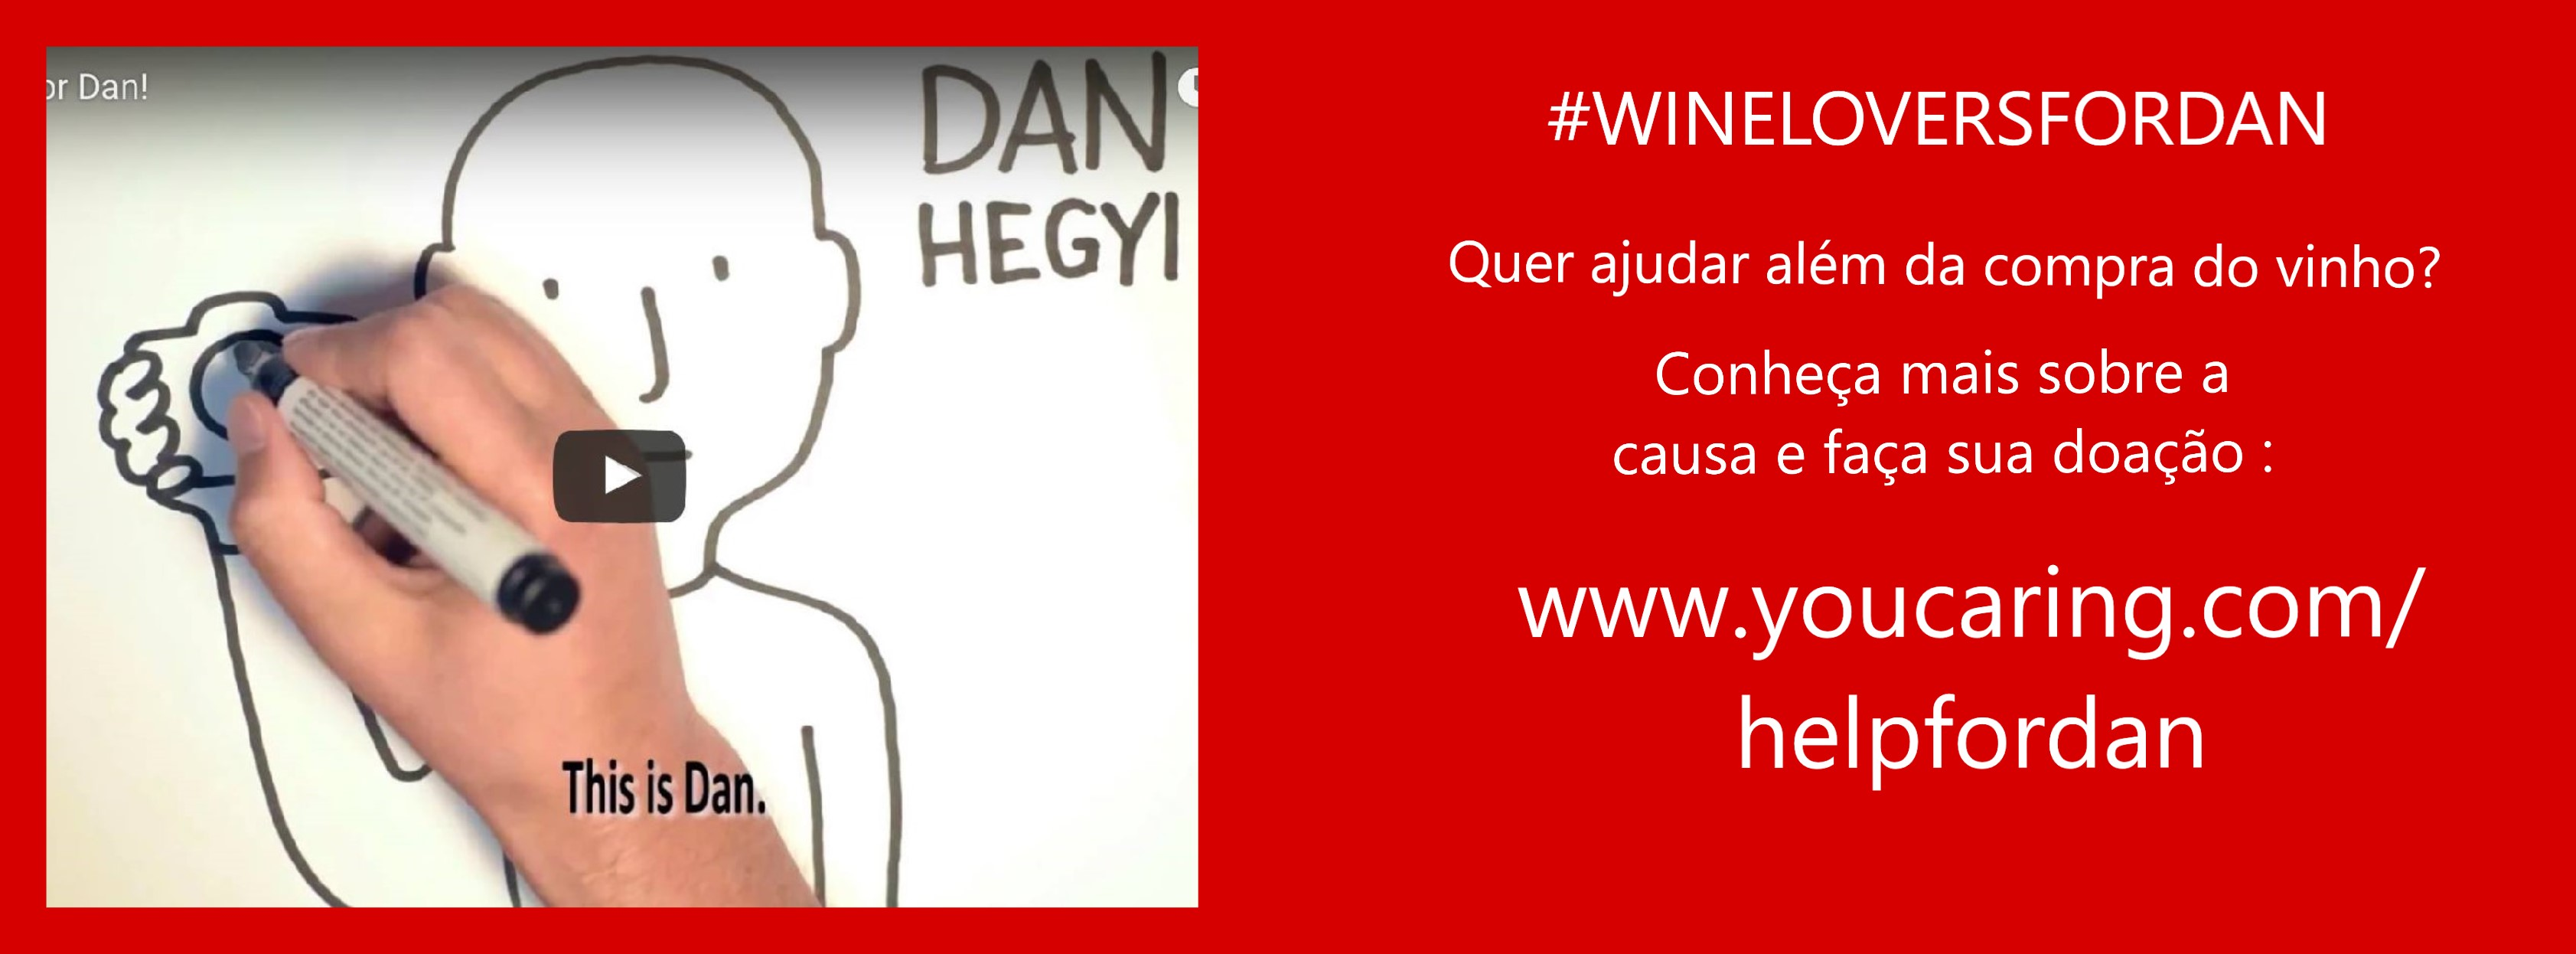 WINELOVERS FOR DAN